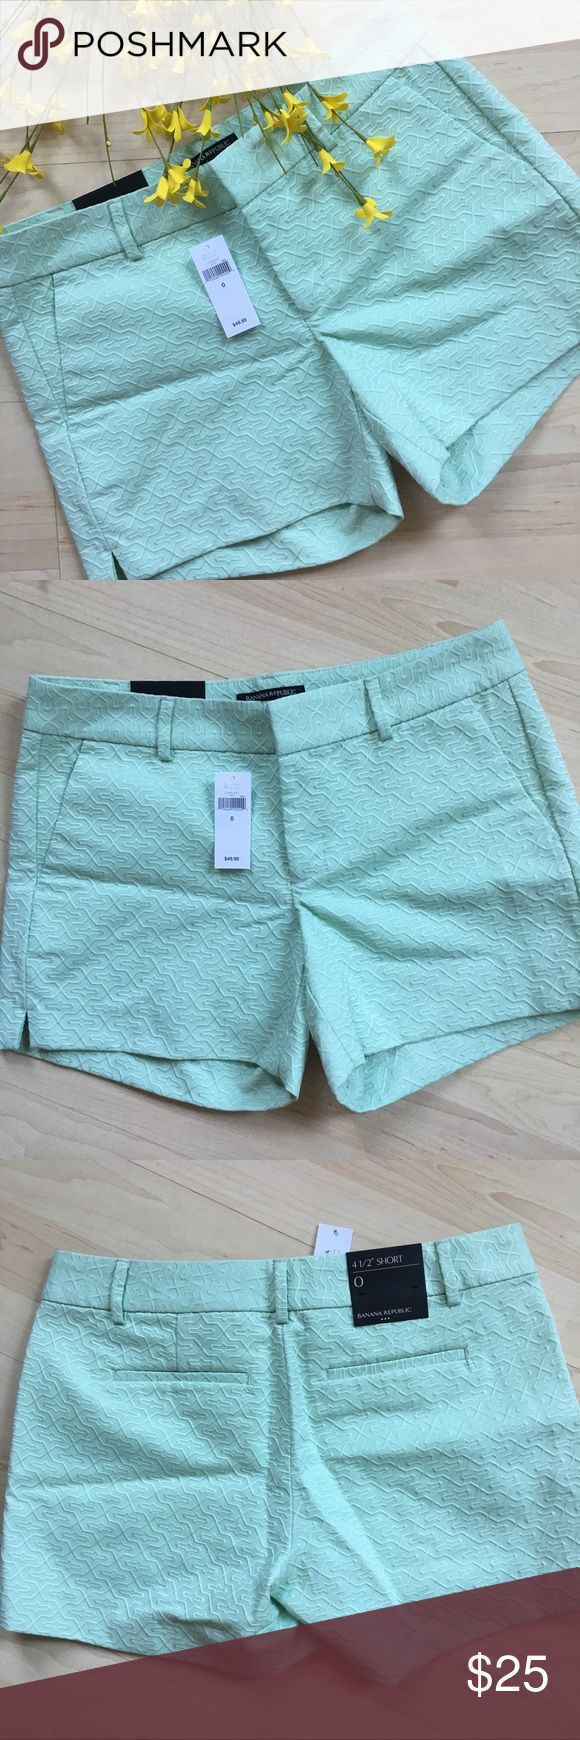 "NWT Banana Republic mint green brocade shorts Adorable light mint green shorts from Banana Republic. ~30"" waist, 4.5"" inseam and 8"" rise. New with tags. Banana Republic Shorts"